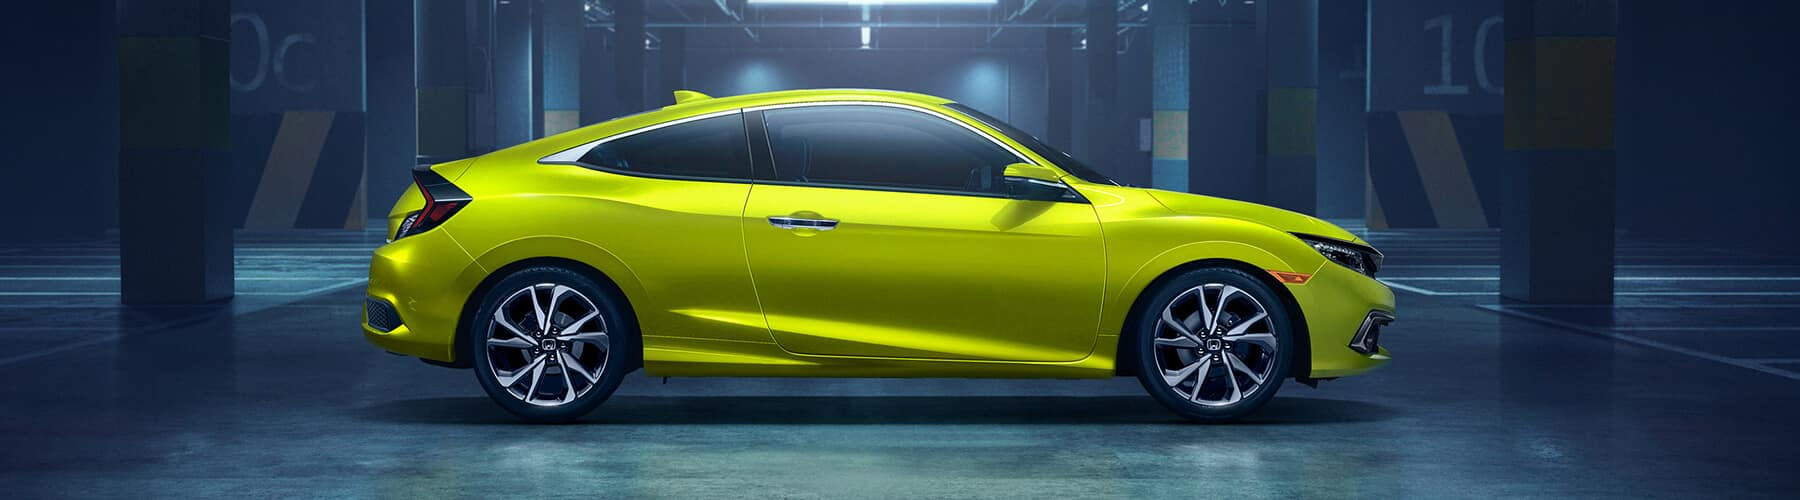 2019 Honda Civic Coupe Slider